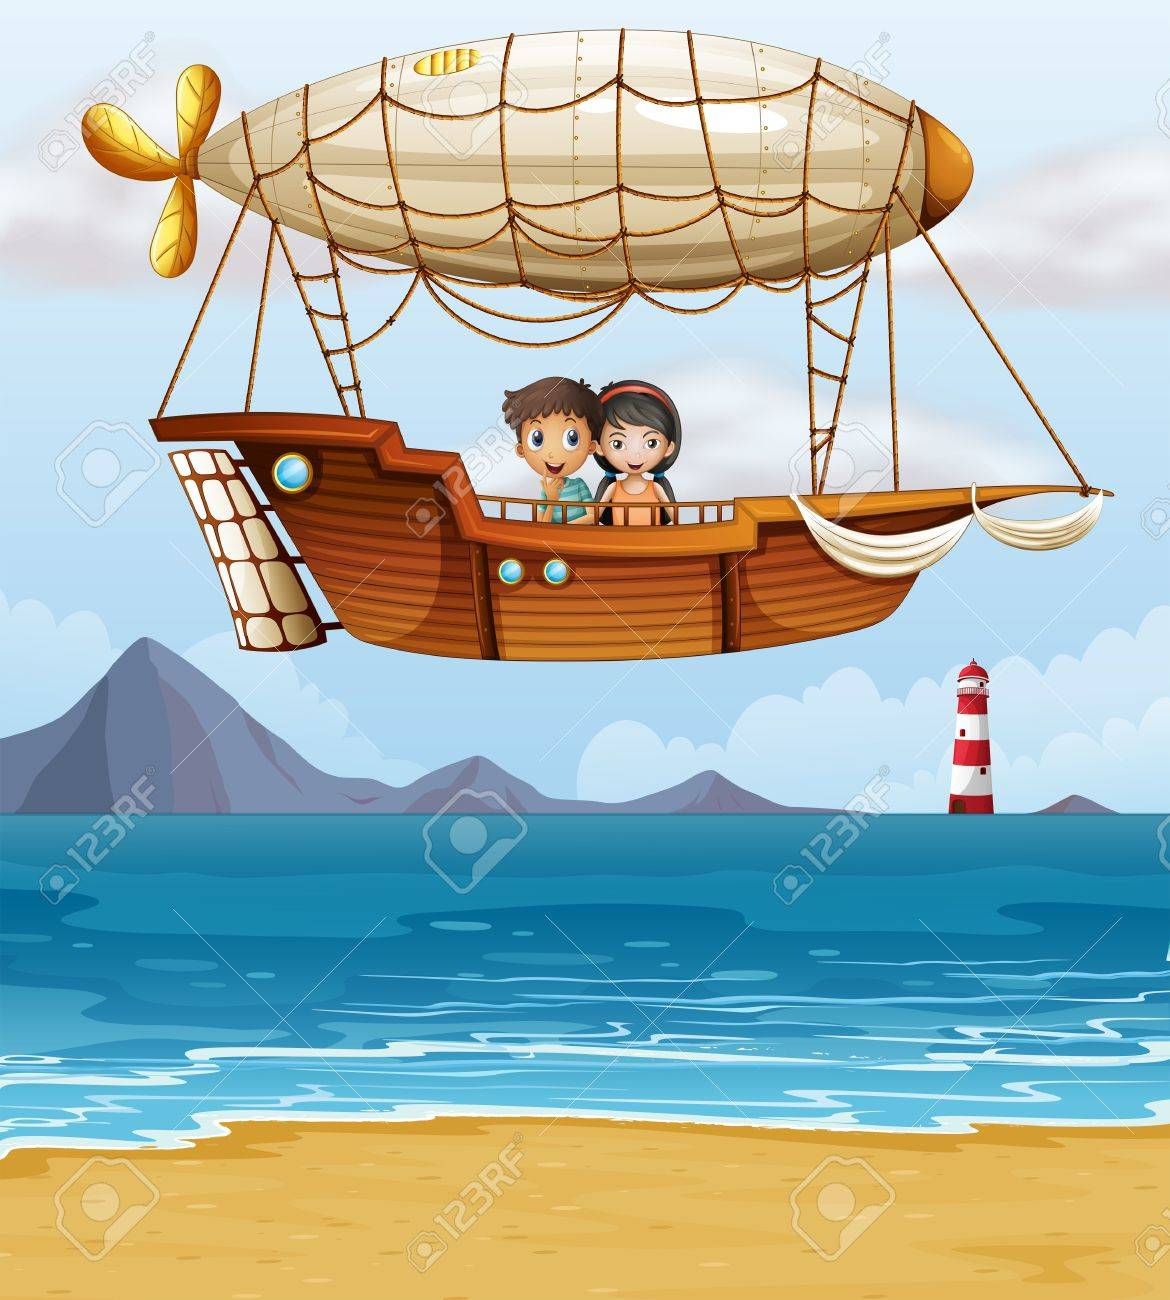 Illustration of a boy and a girl riding an airship Stock Vector - 18012964